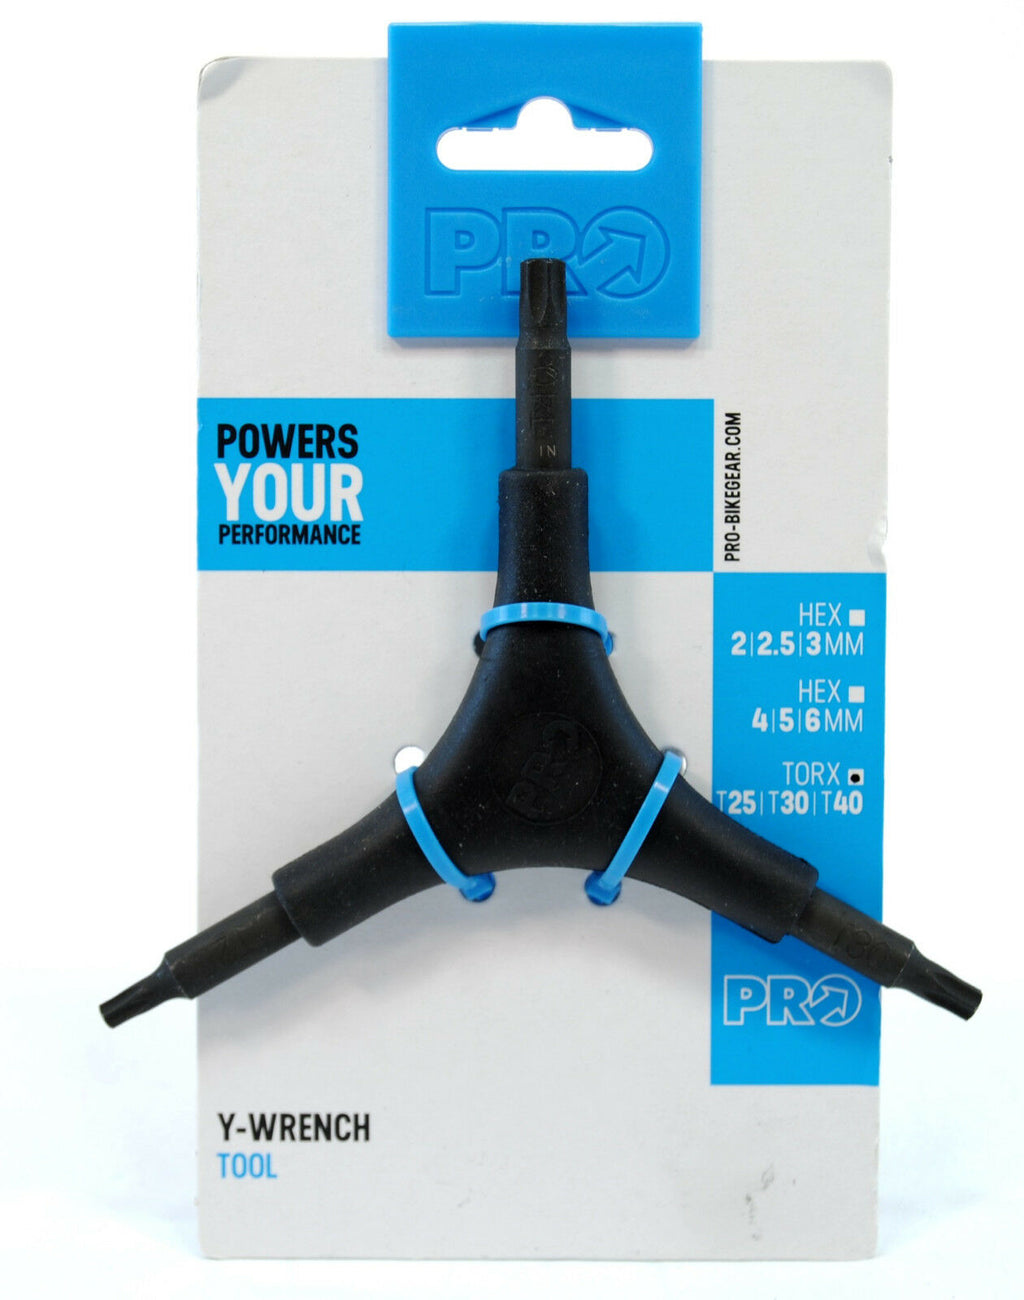 Shimano Y-Wrench Torx Tool